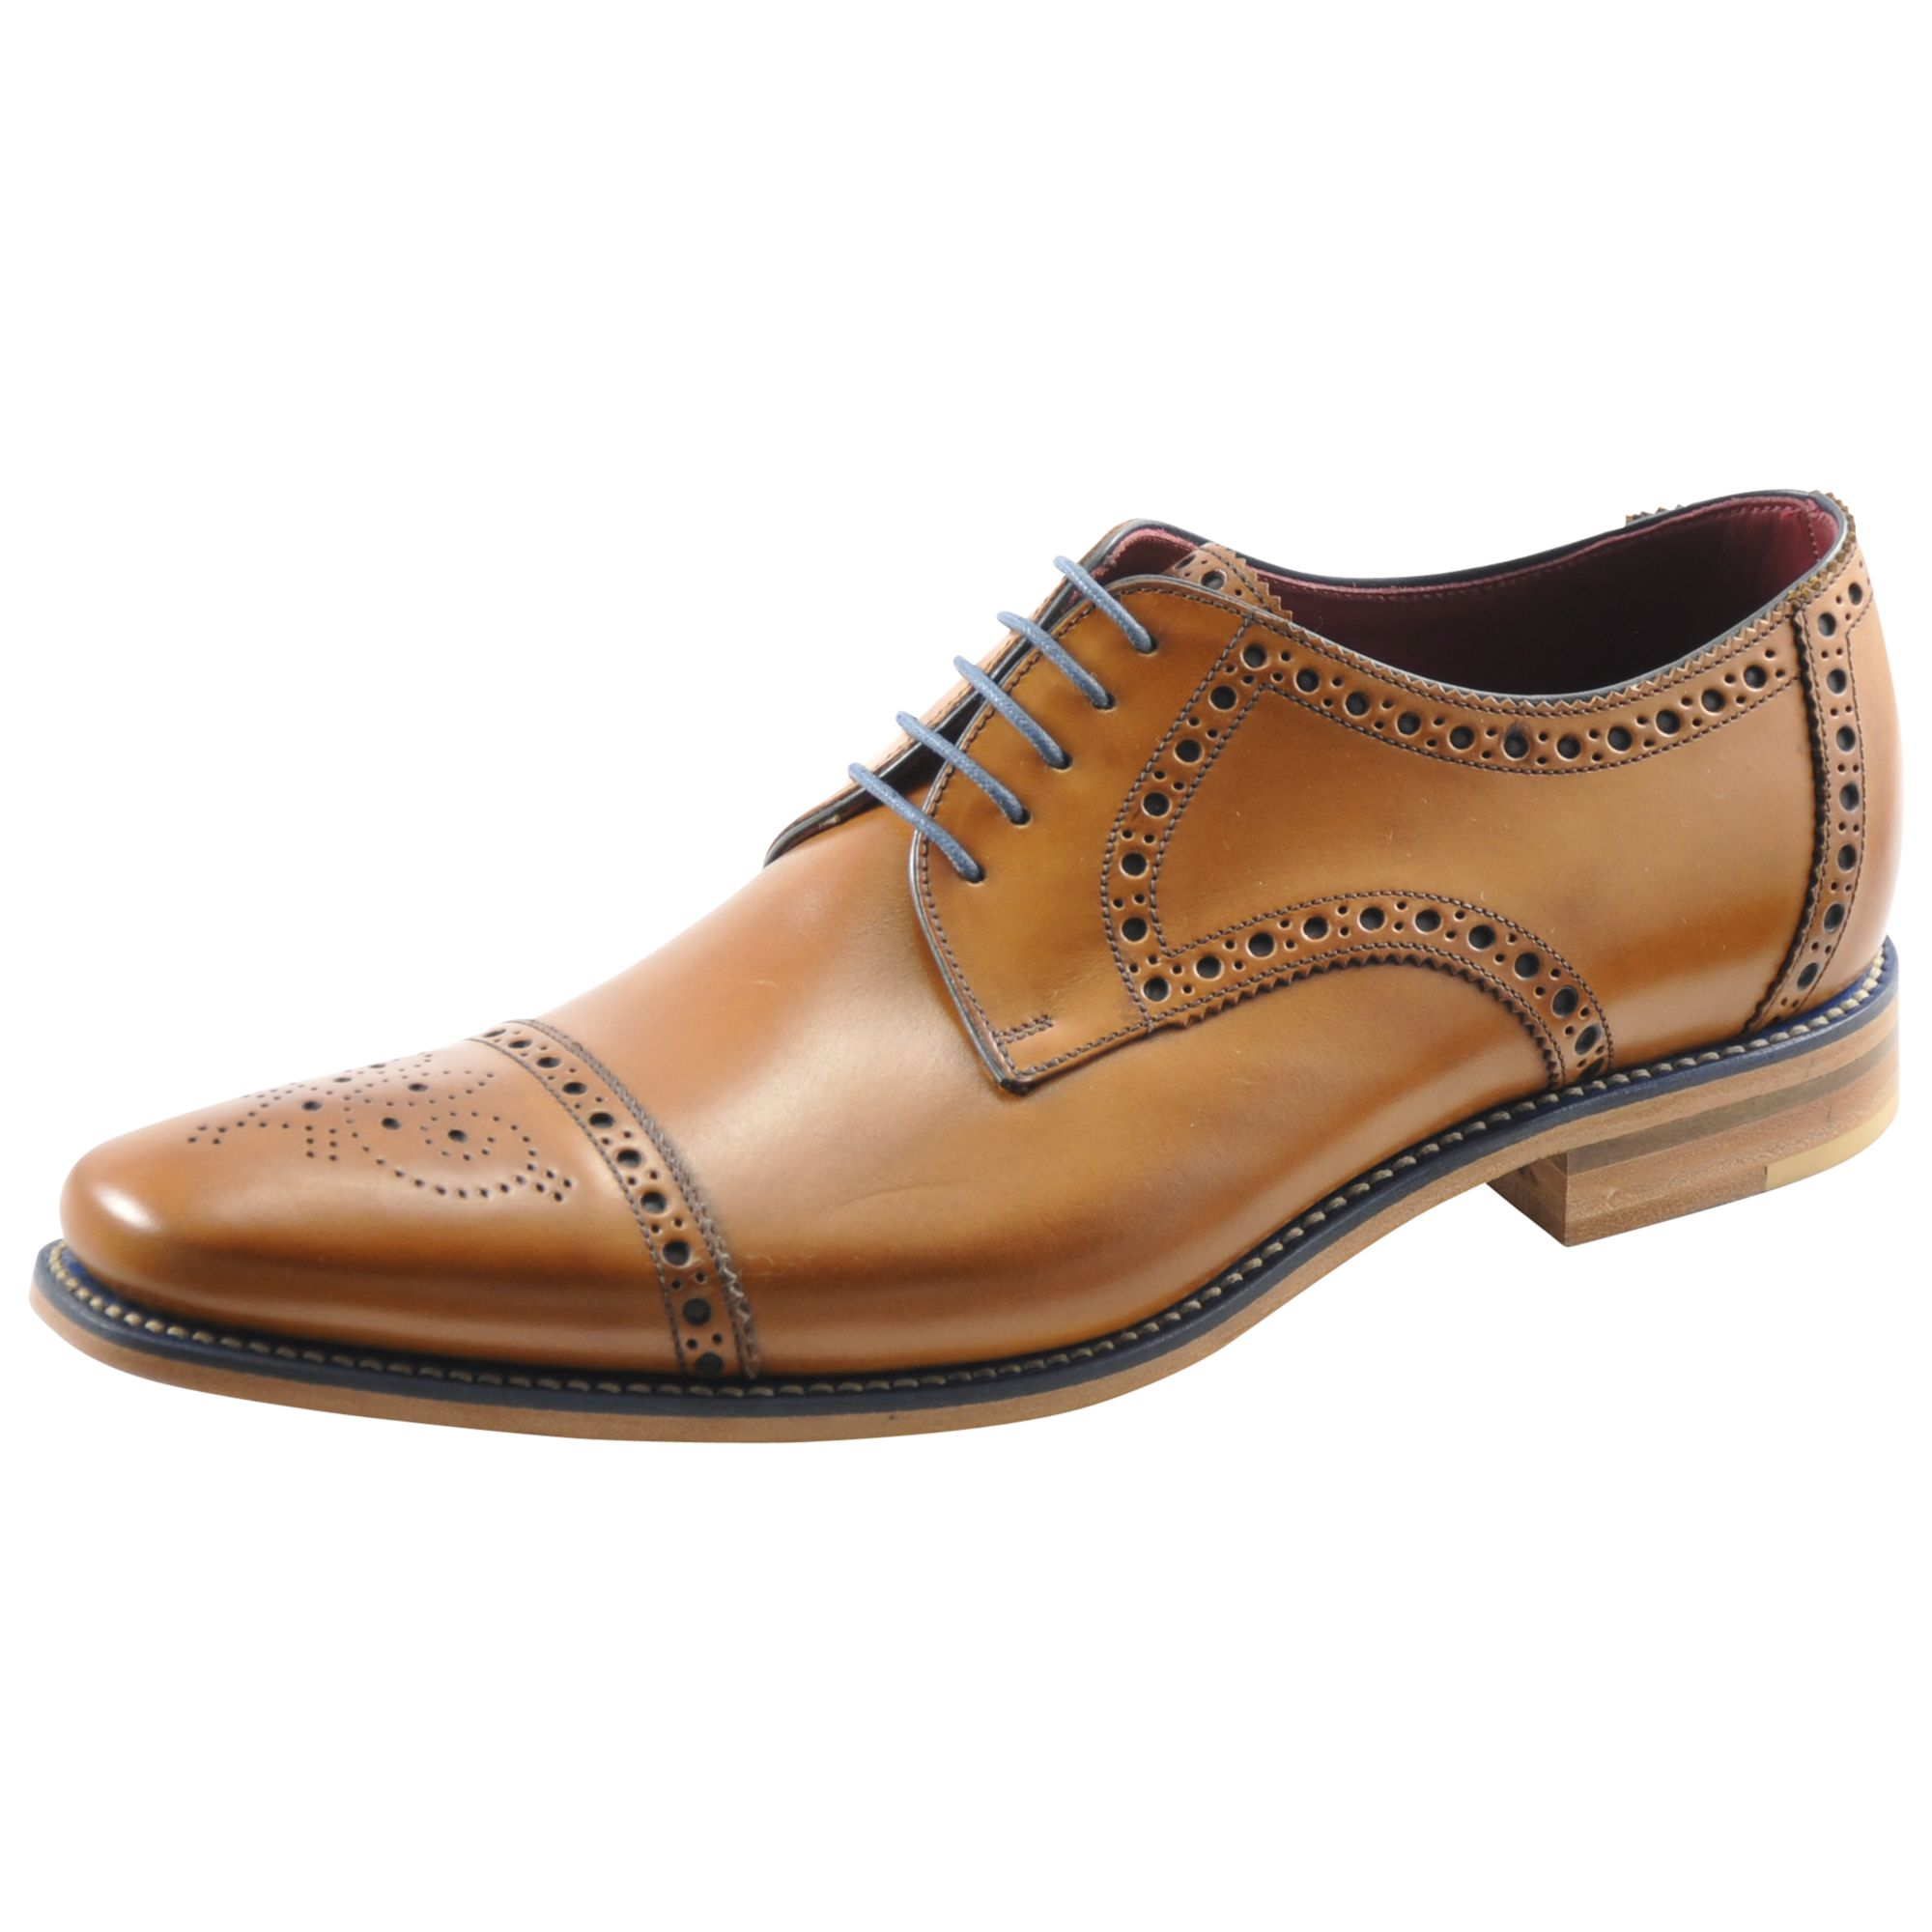 Loake Loake Foley Derby Lace-Up Brogues